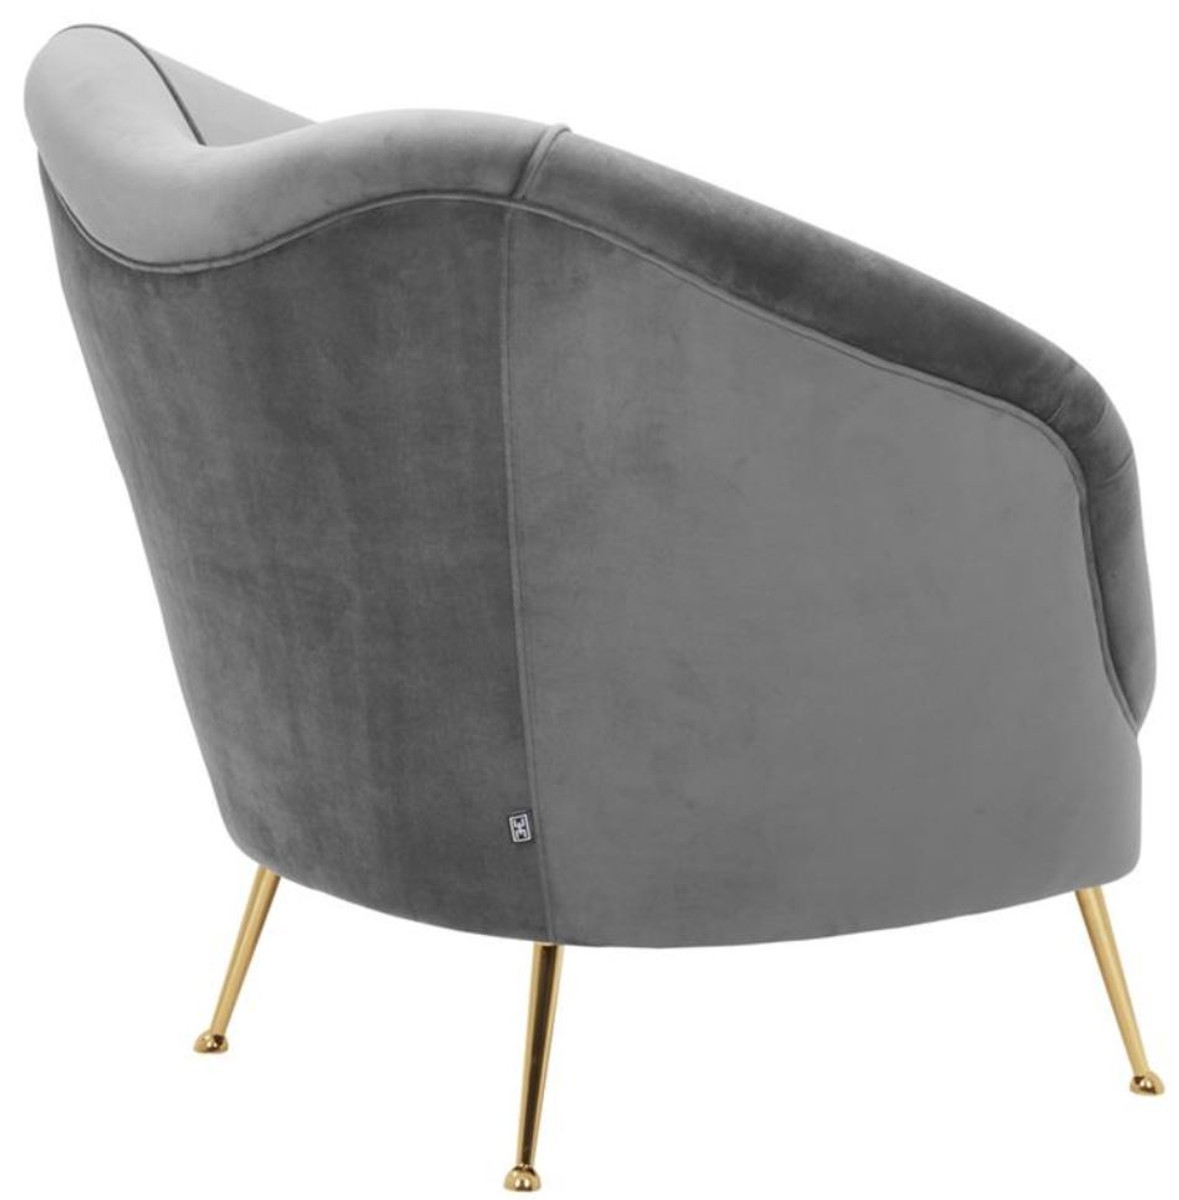 Casa Padrino Luxus Salon Sessel Grau / Messing 85 x 77 x H. 80 cm - Luxus Kollektion 3